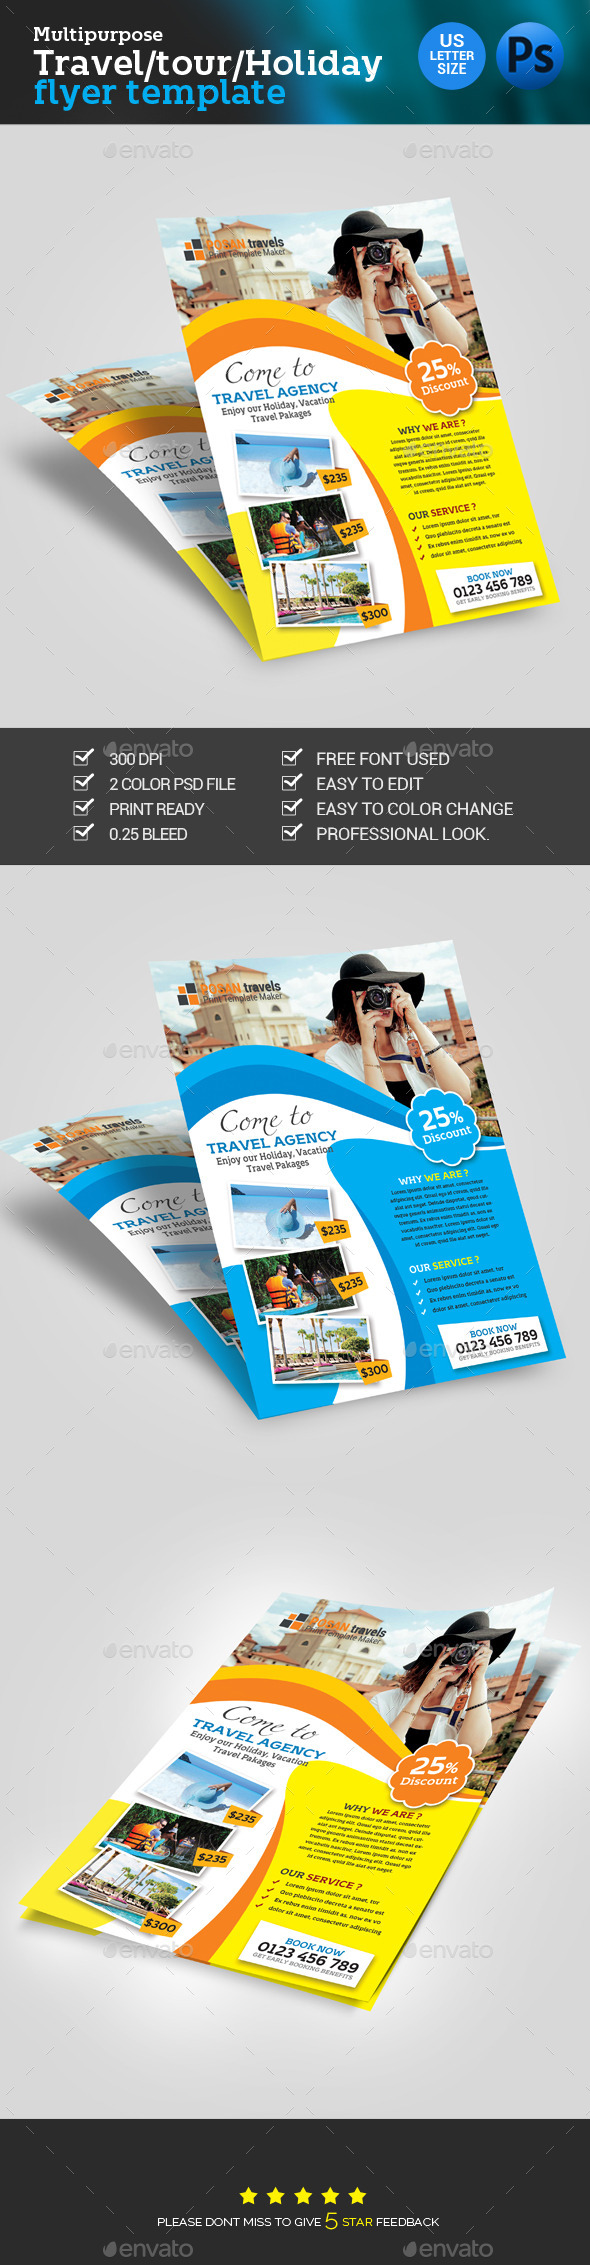 Travel Tour Tourism Agency Flyer By Posanlab Graphicriver